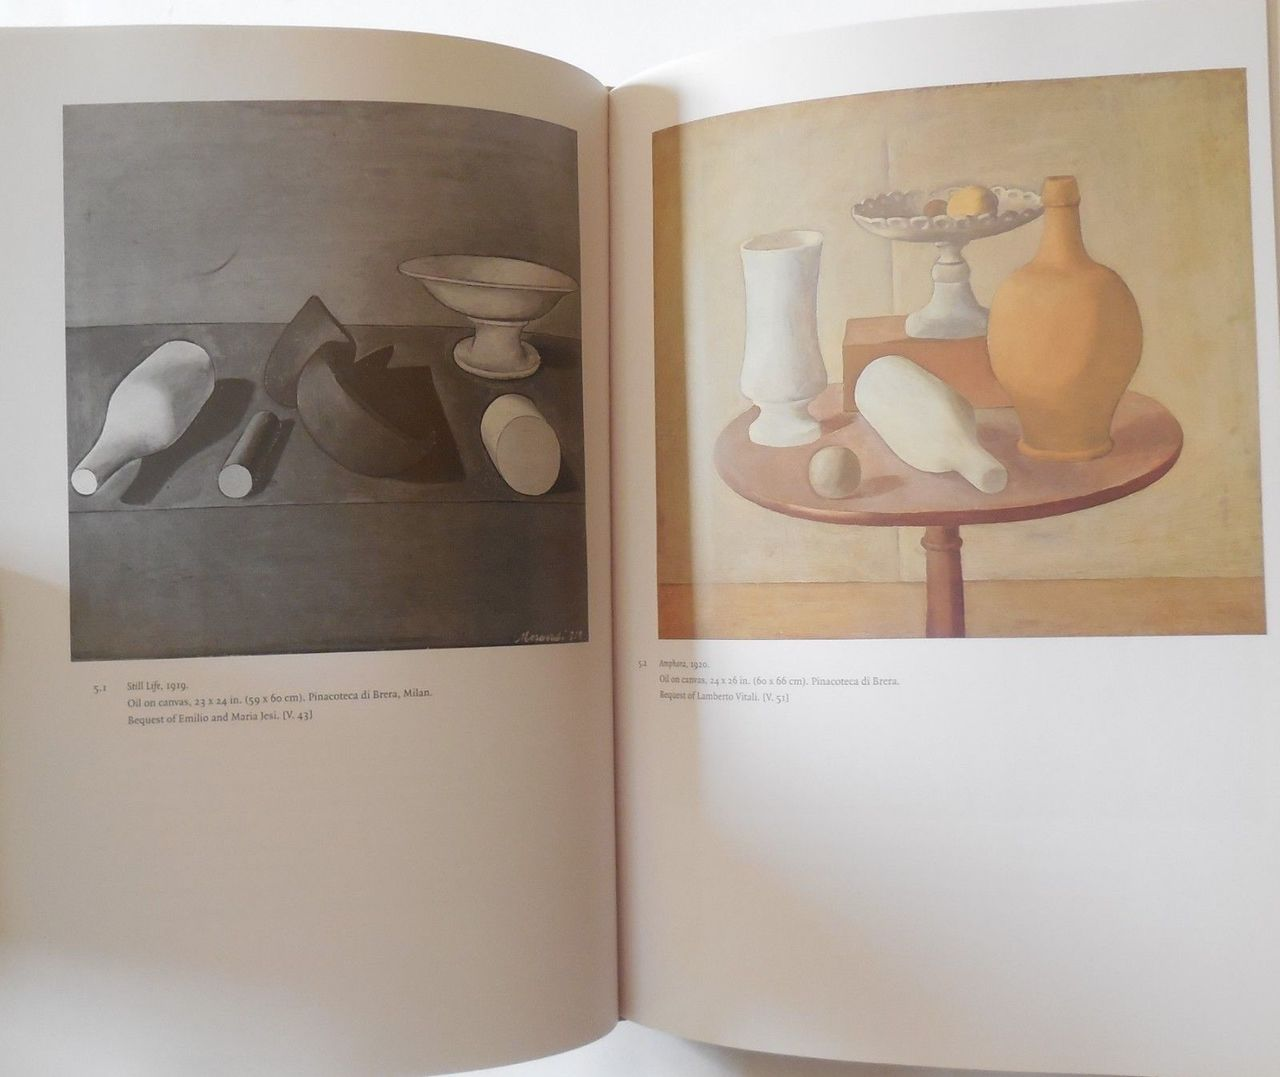 GIORGIO MORANDI: THE ART OF SILENCE, by Janet Abramowicz - 2004